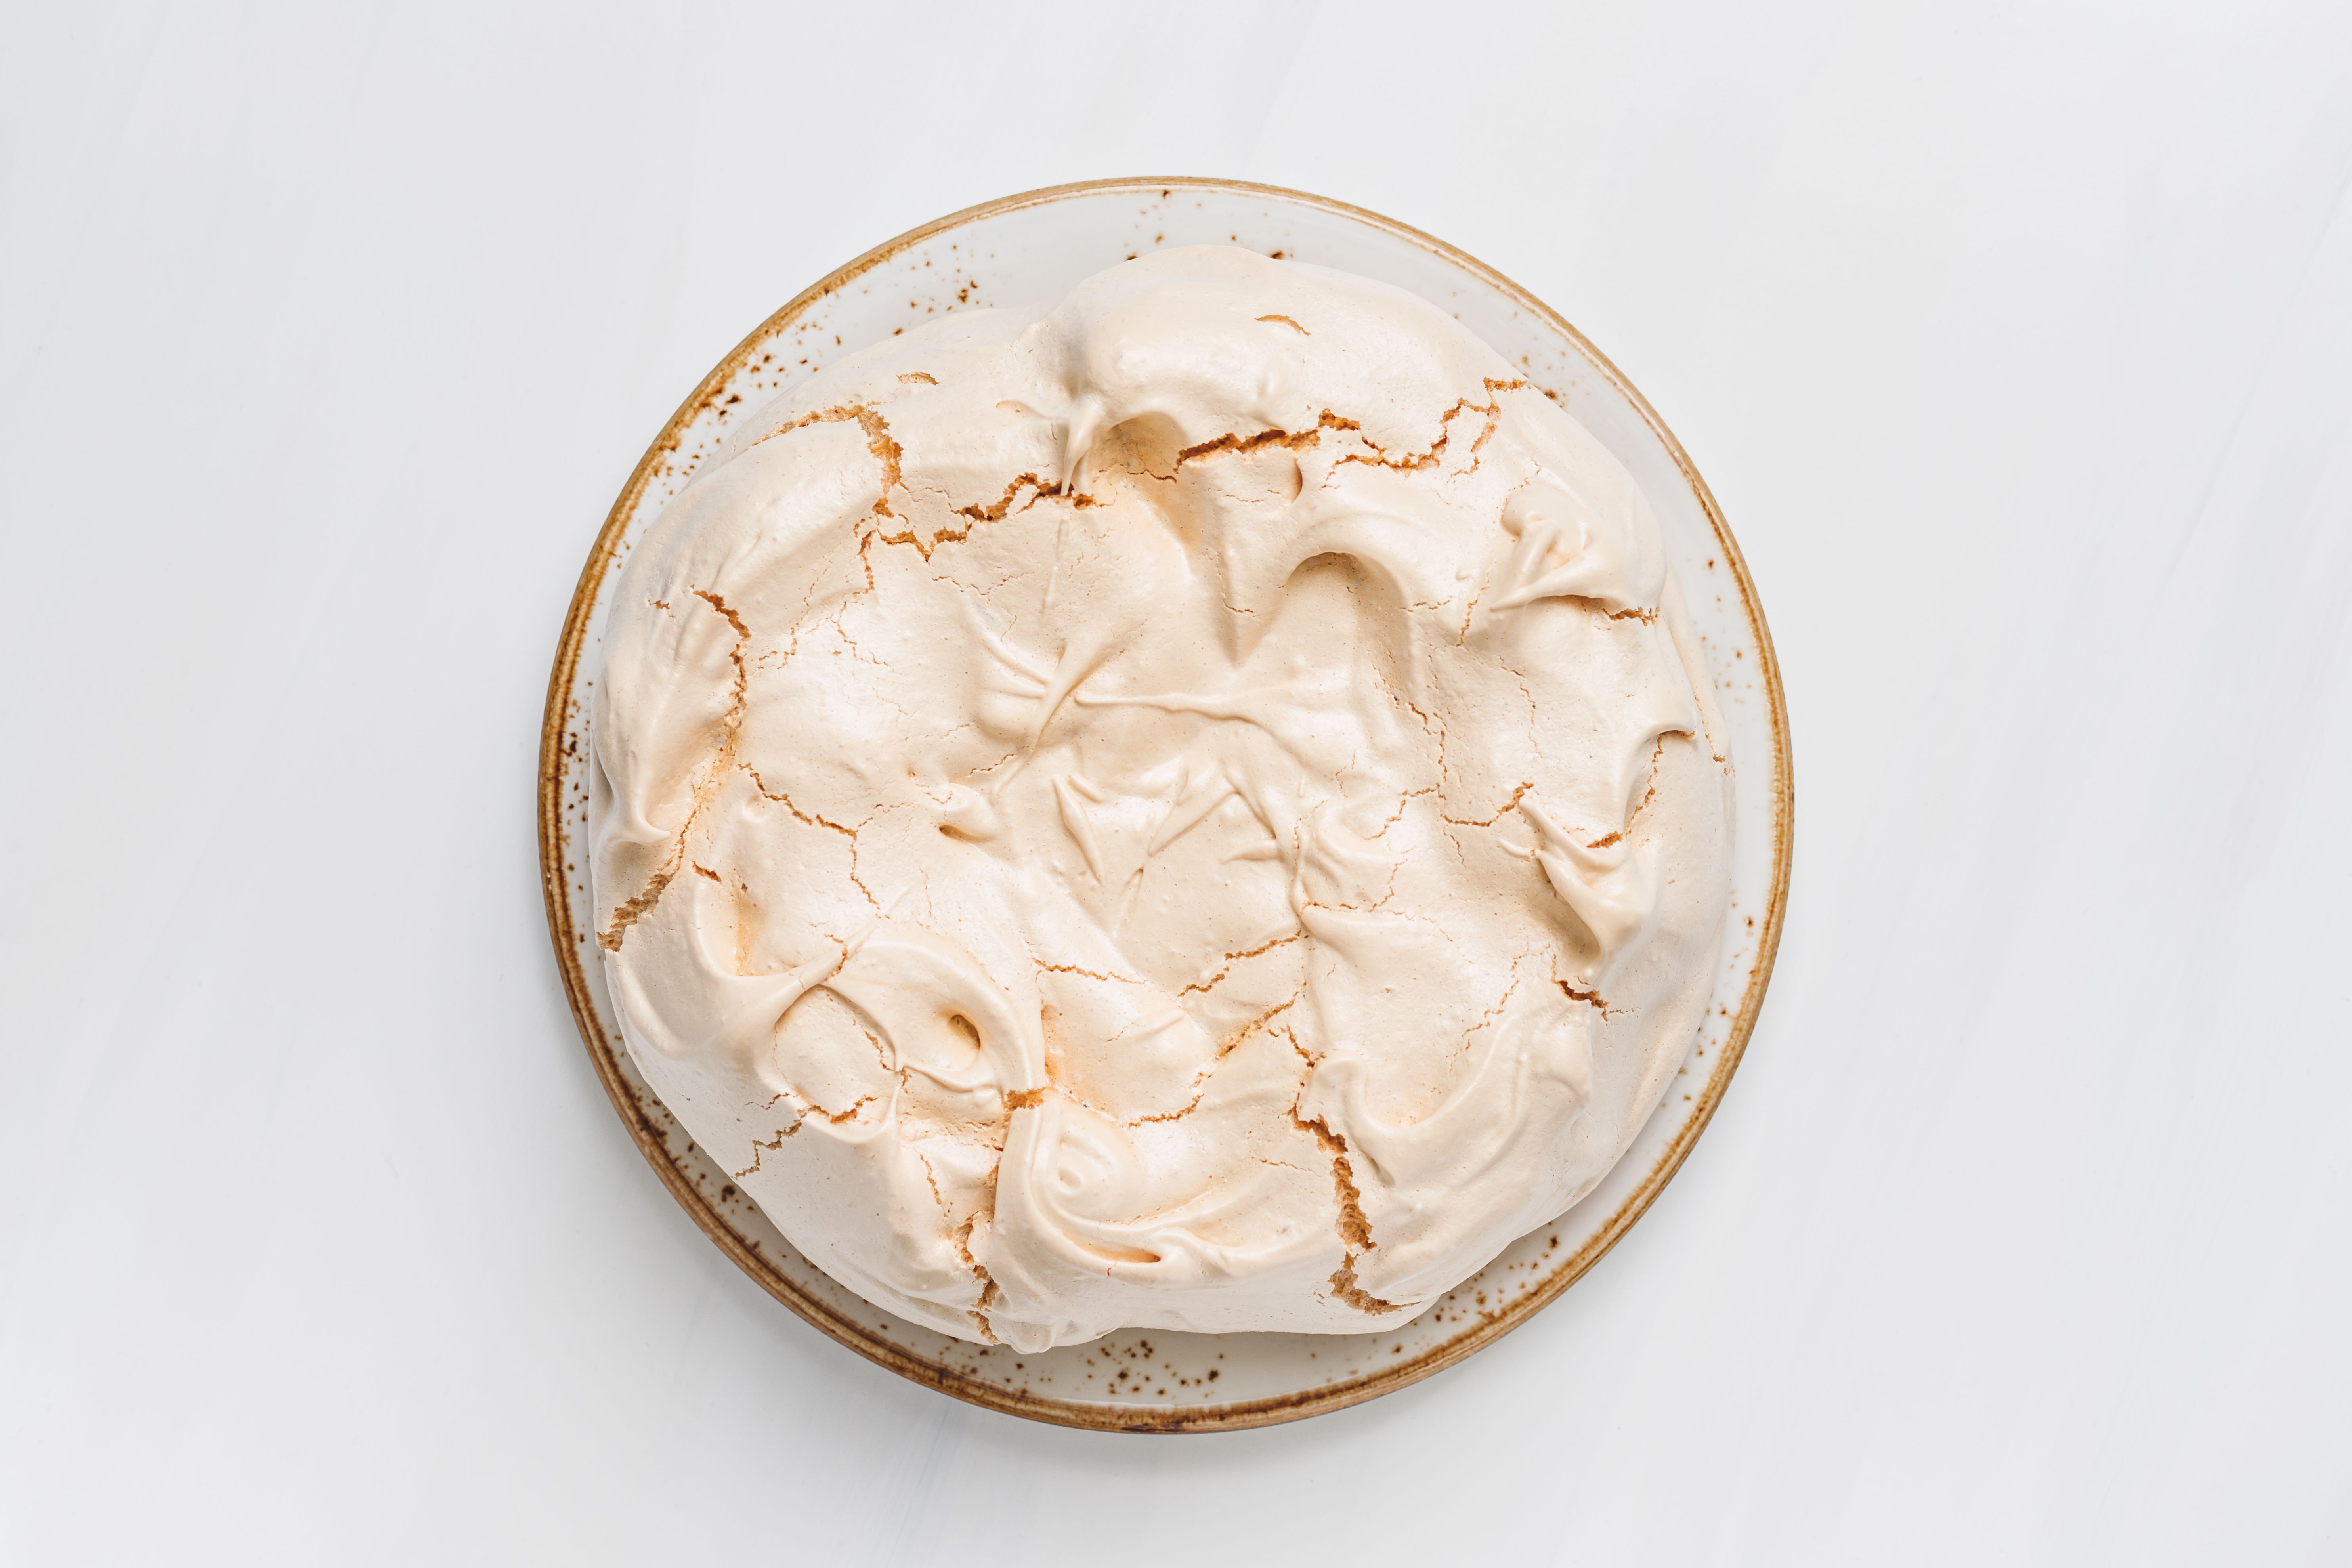 Baked meringue on a plate